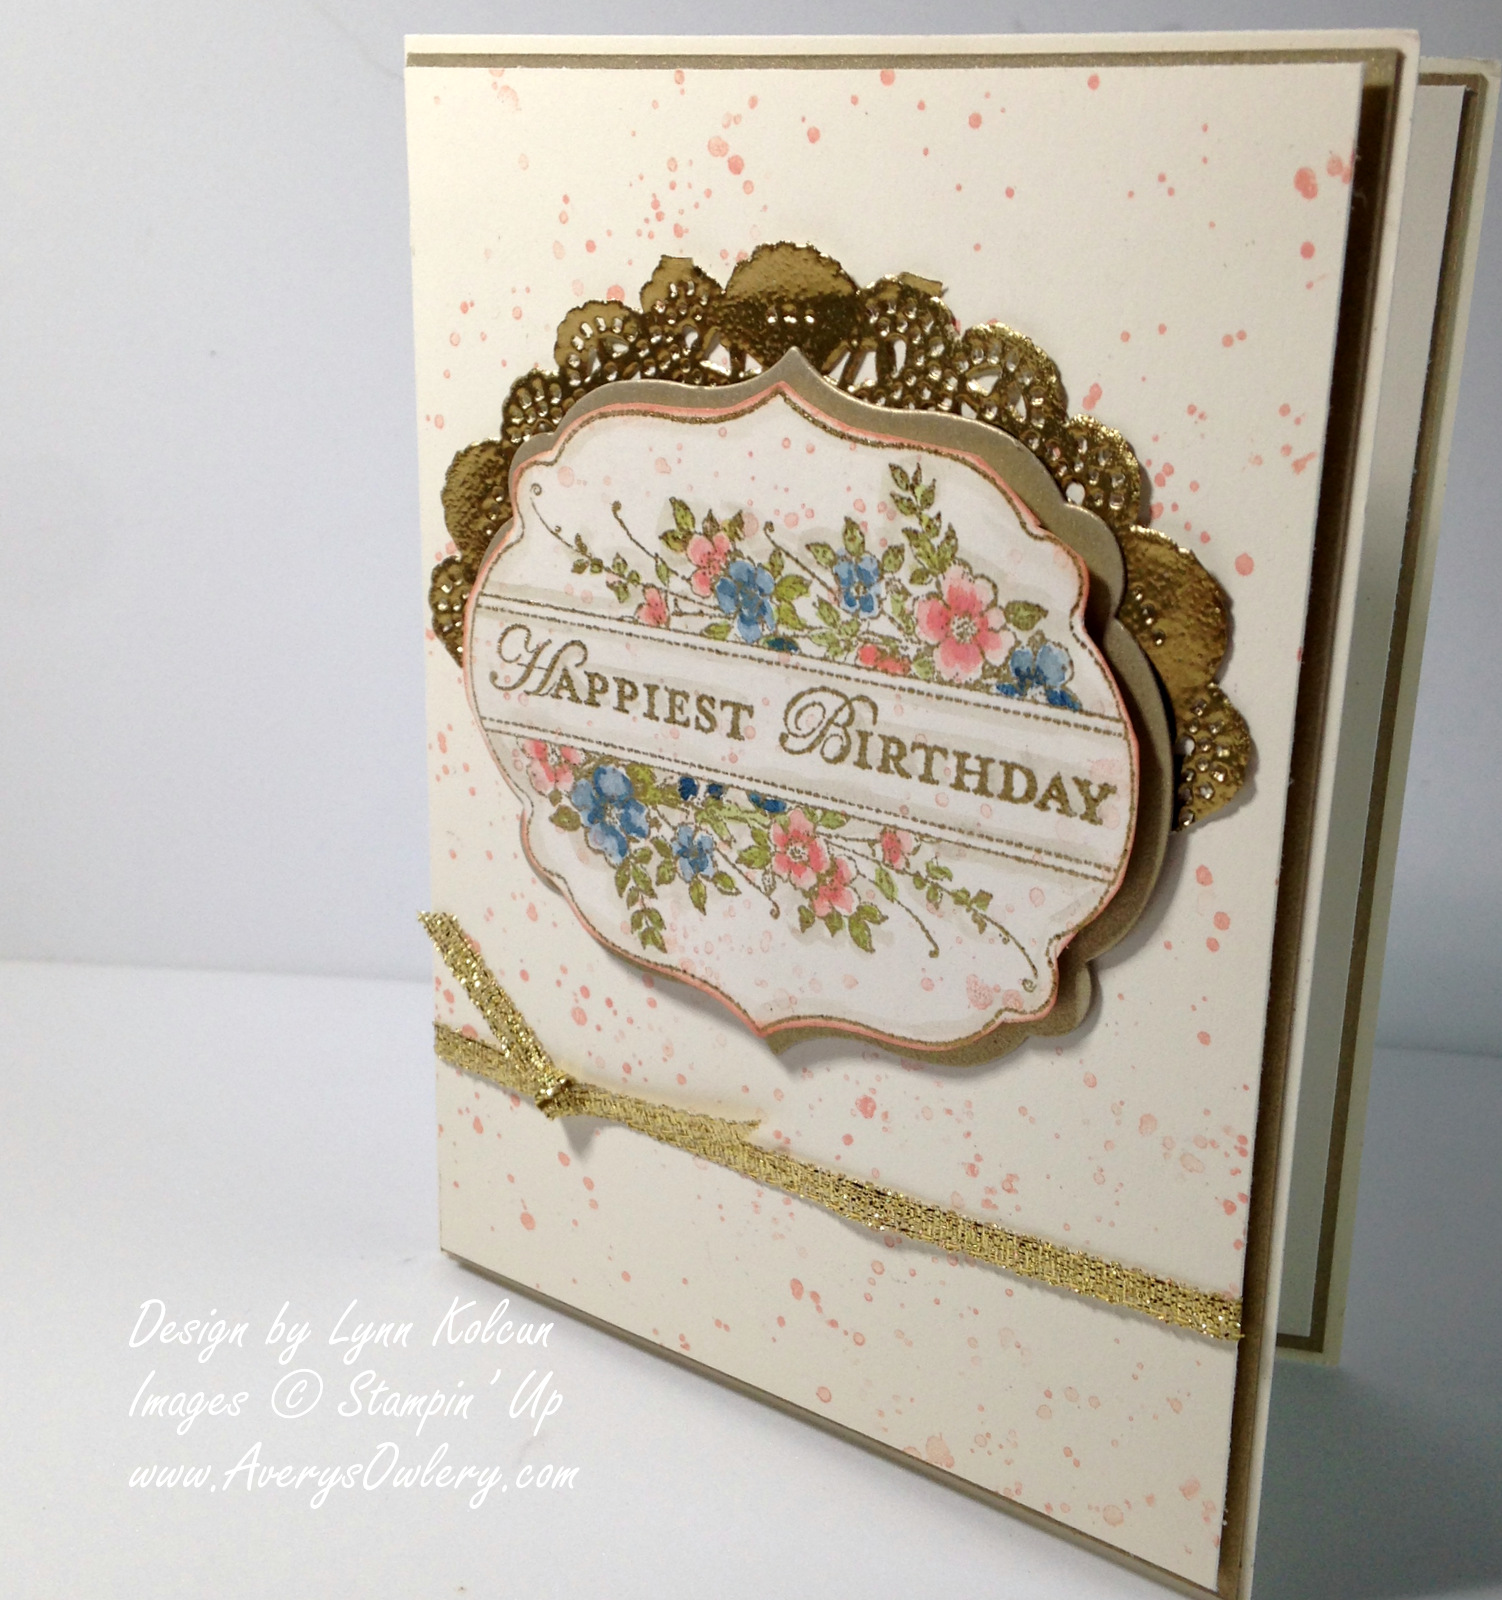 Stampin Up Apothecary Arts AverysOwlery.com